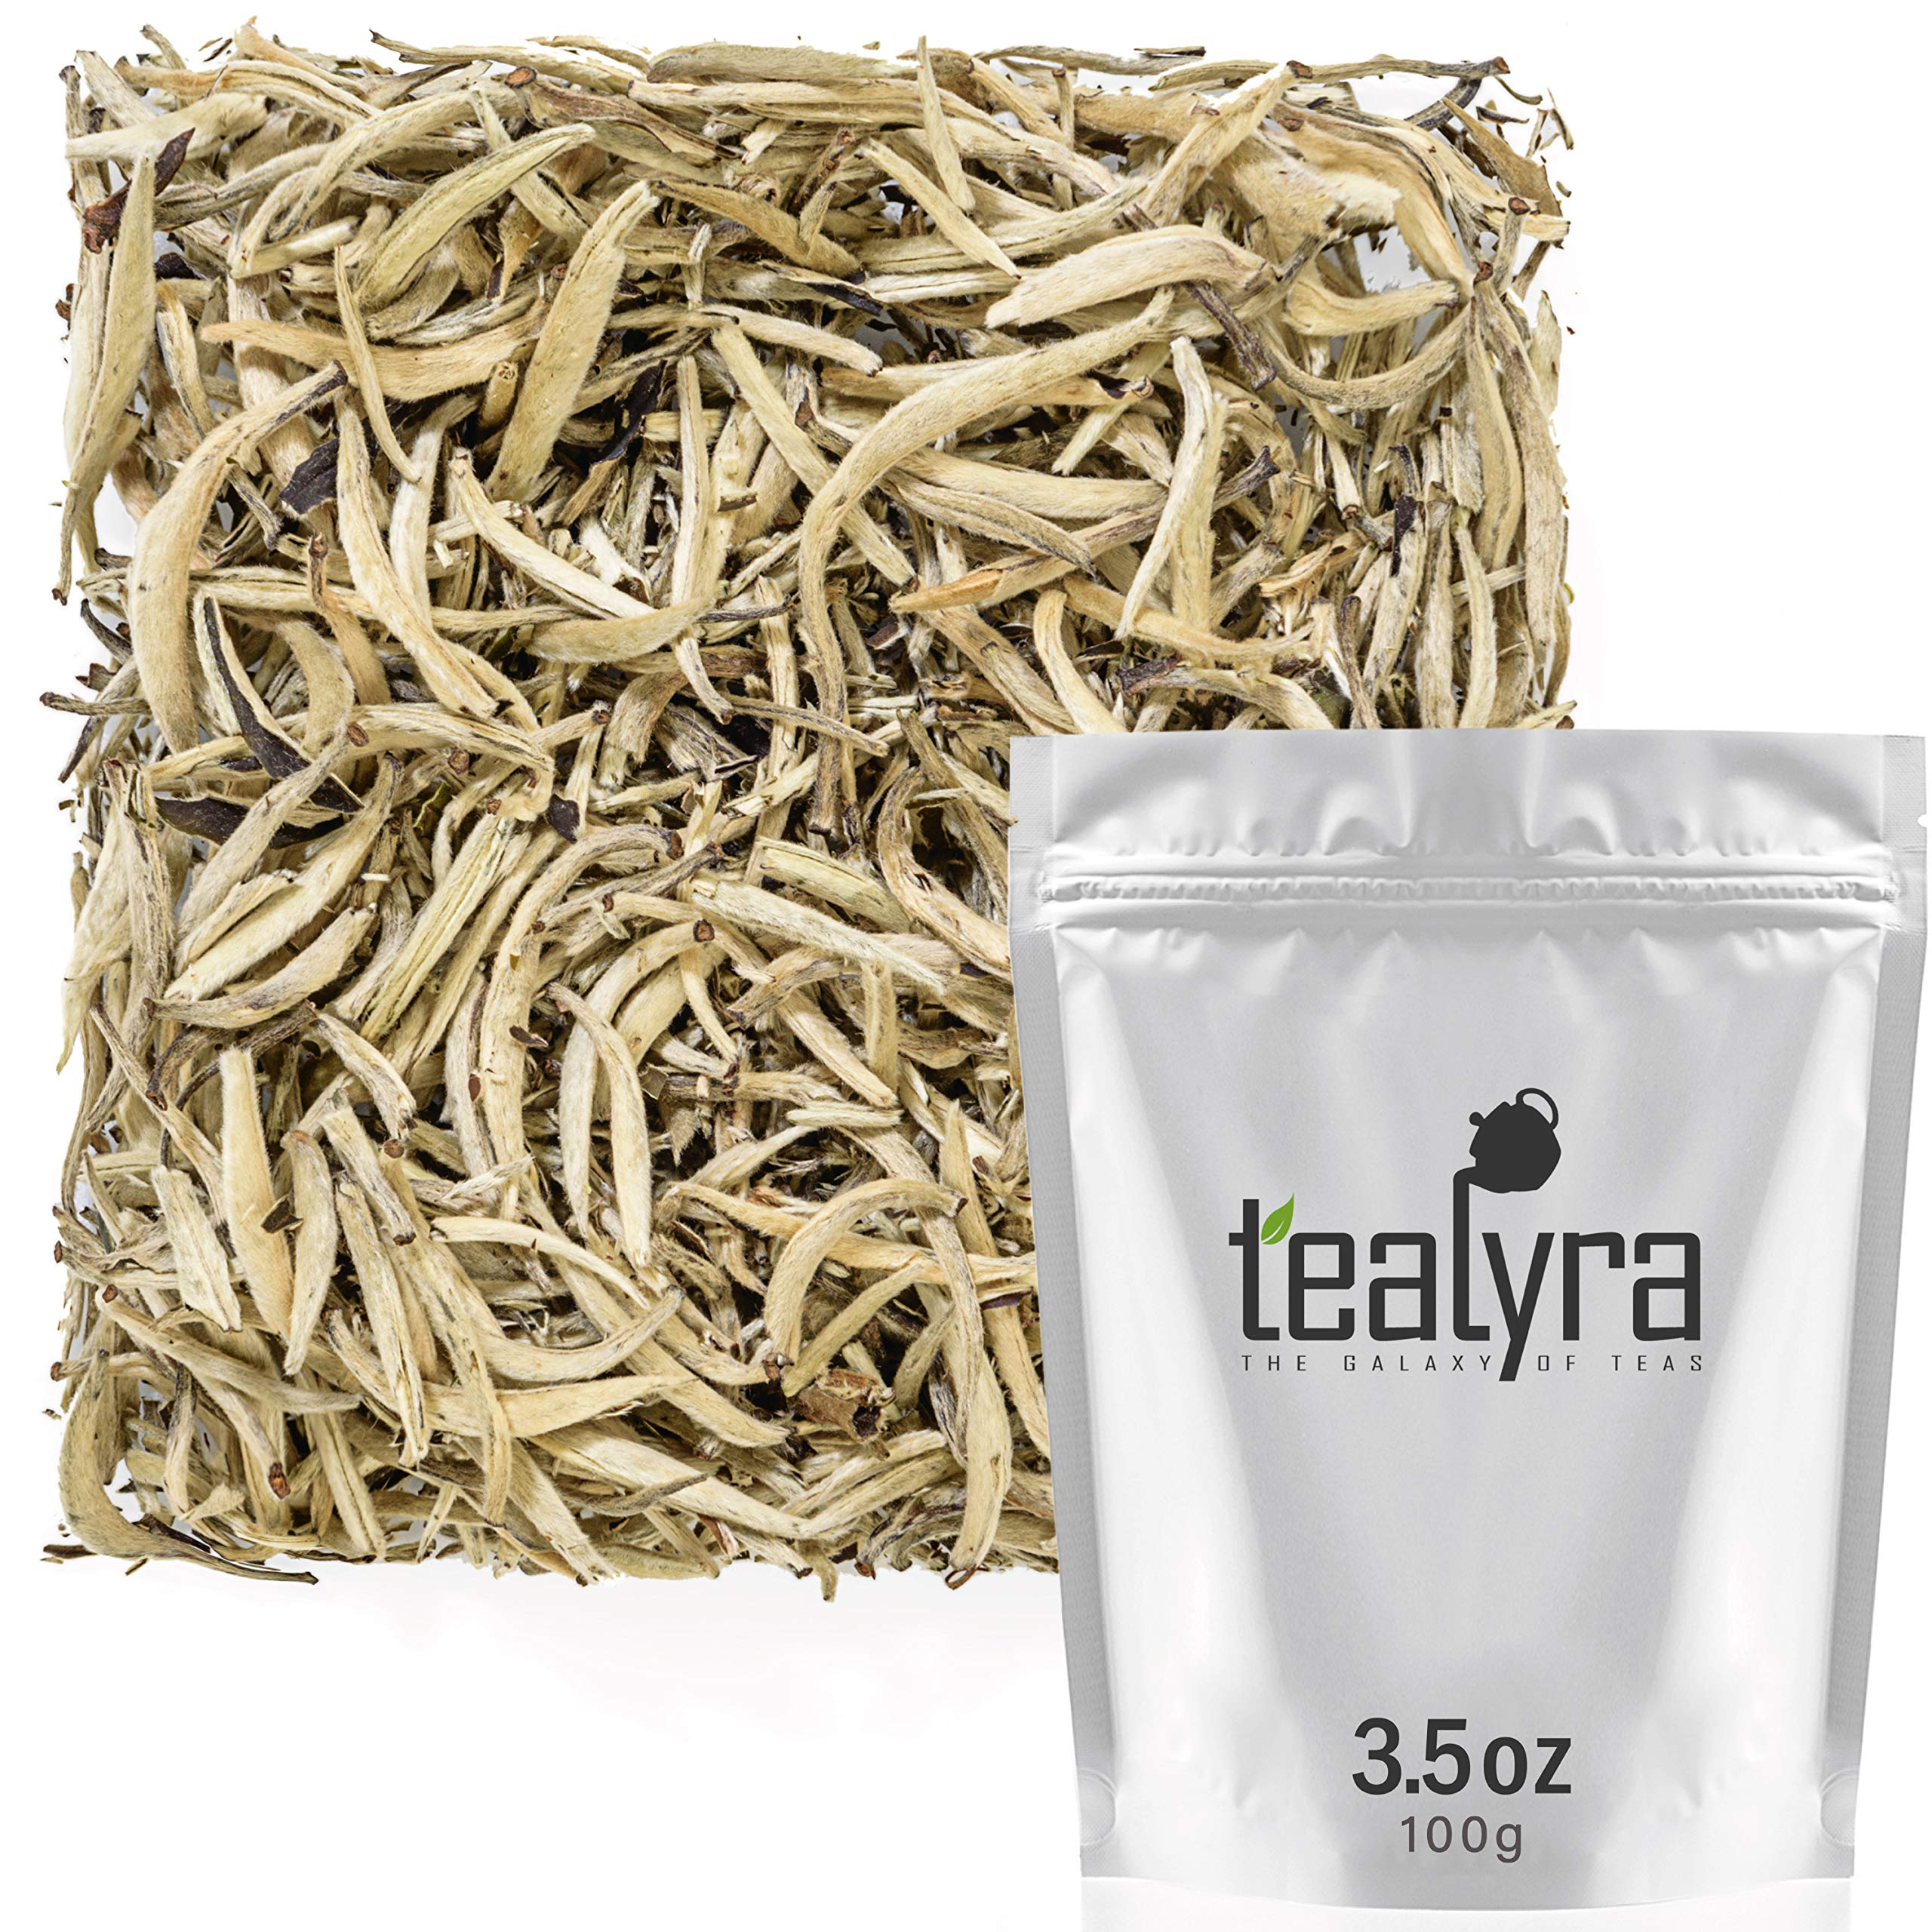 Tealyra - Imperial Yunnan Silver Needle - White Loose Leaf Tea - Organically Grown - Caffeine Level Low - 100g (3.5-ounce)